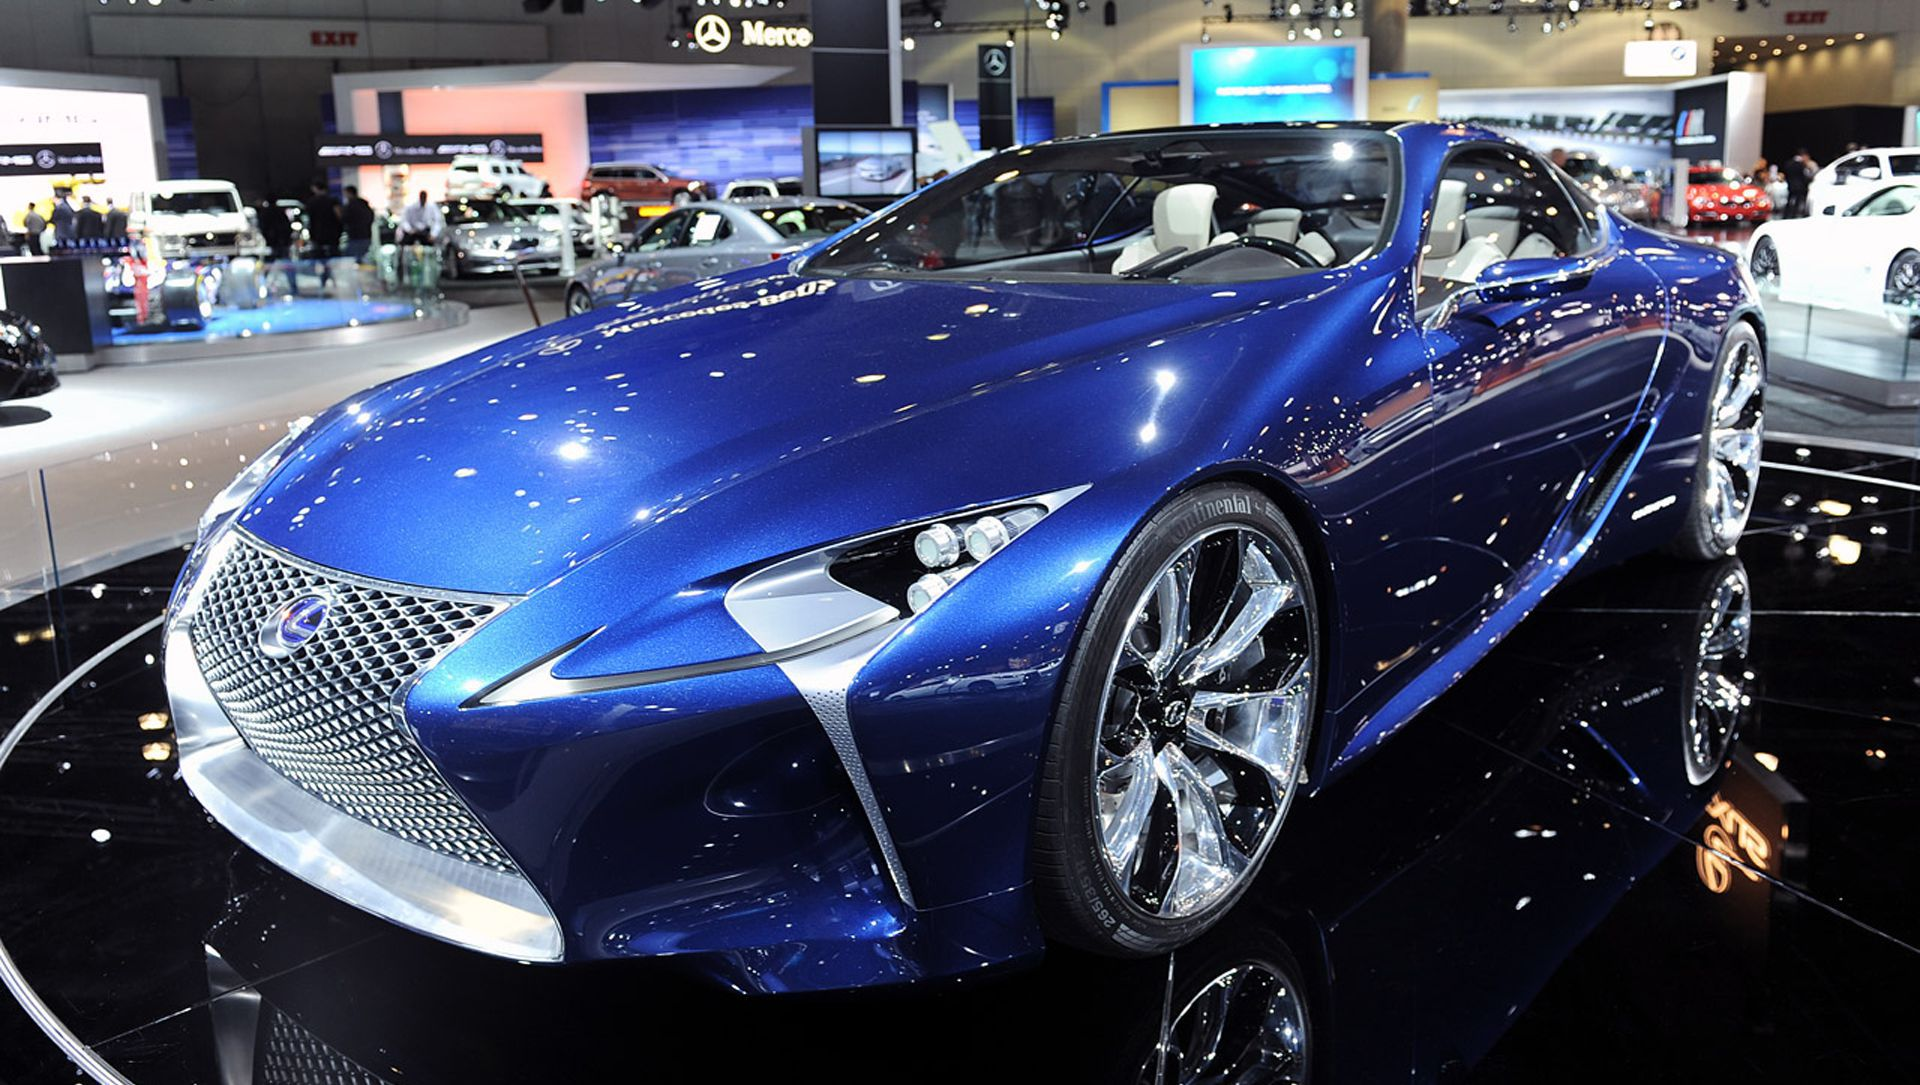 Color car los angeles - Los Angeles 2012 Lexus Lf Lc Concept Blue